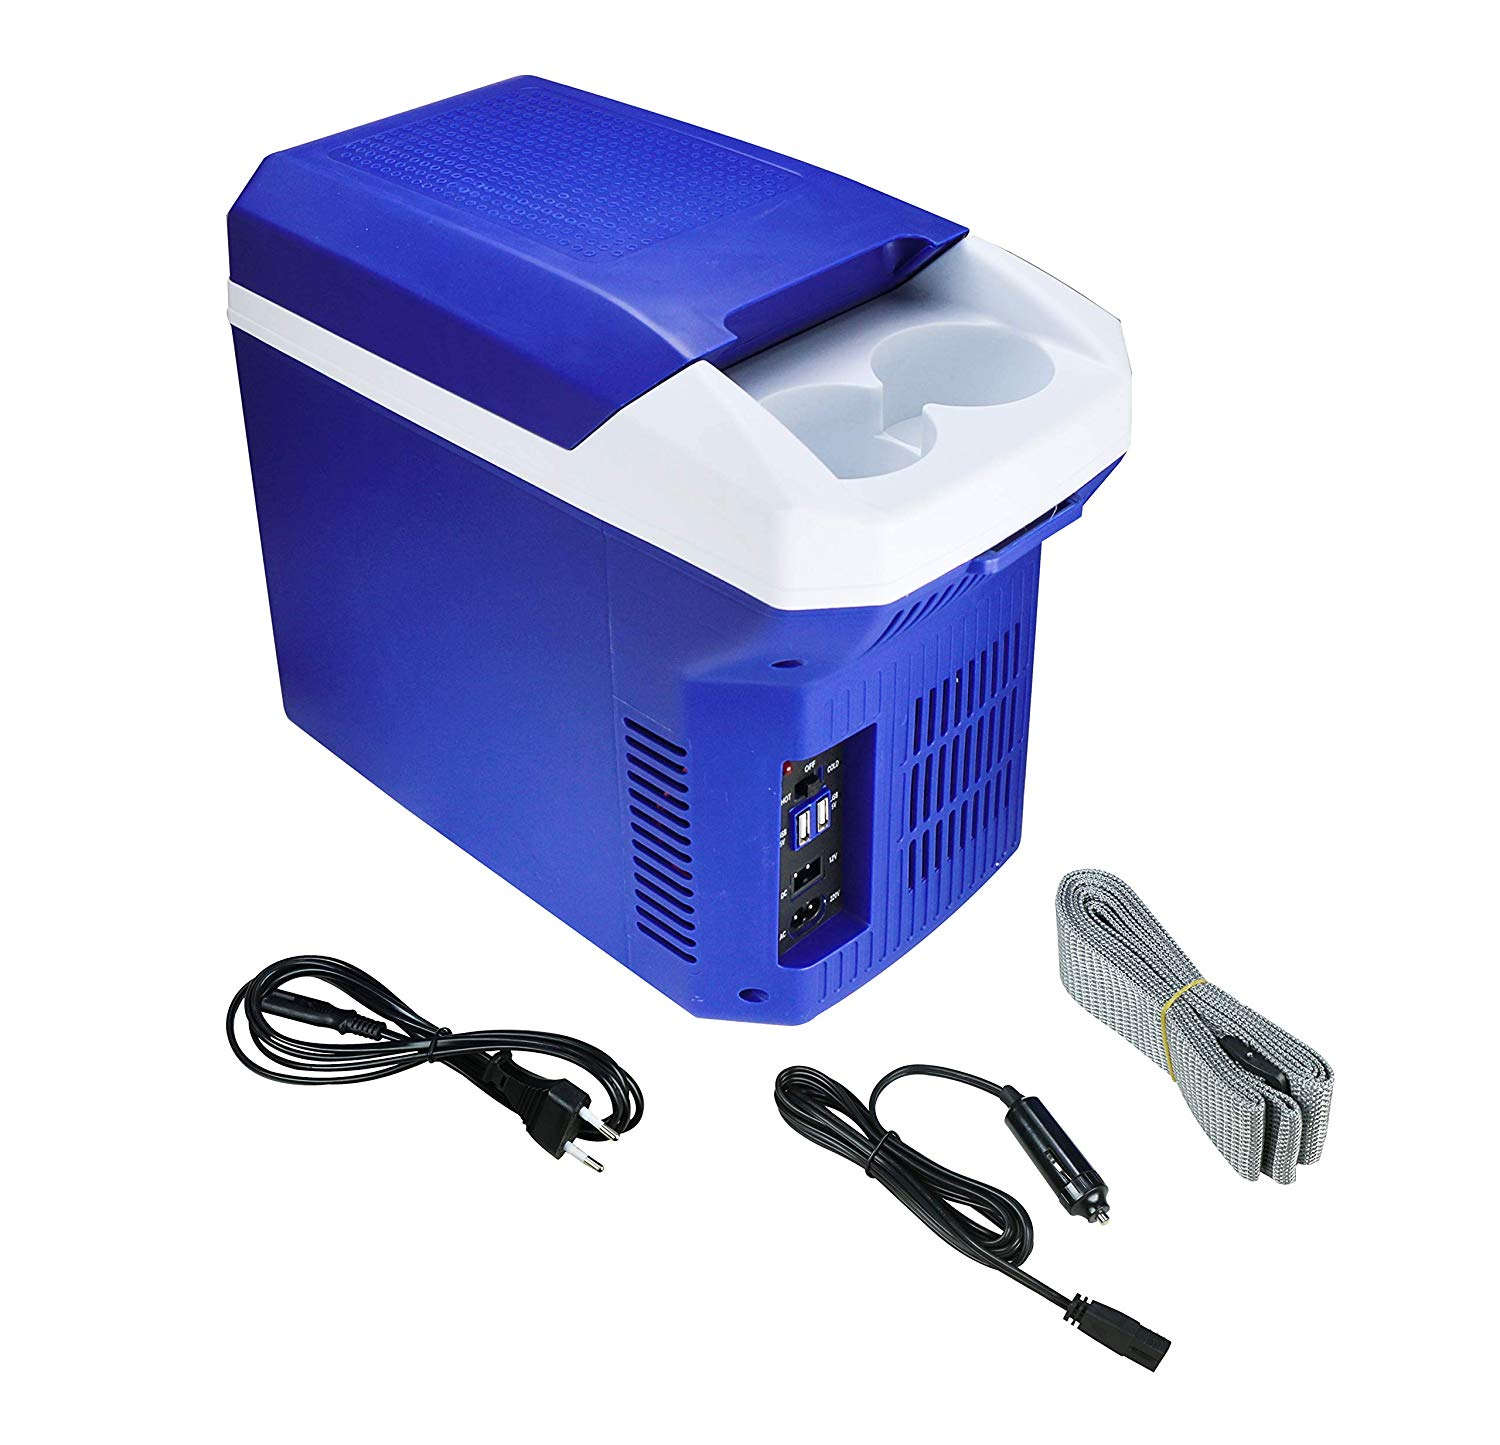 BLACKCAT THERMOELECTRIC COOLER CUM WARMER 8 LTS. TB-08